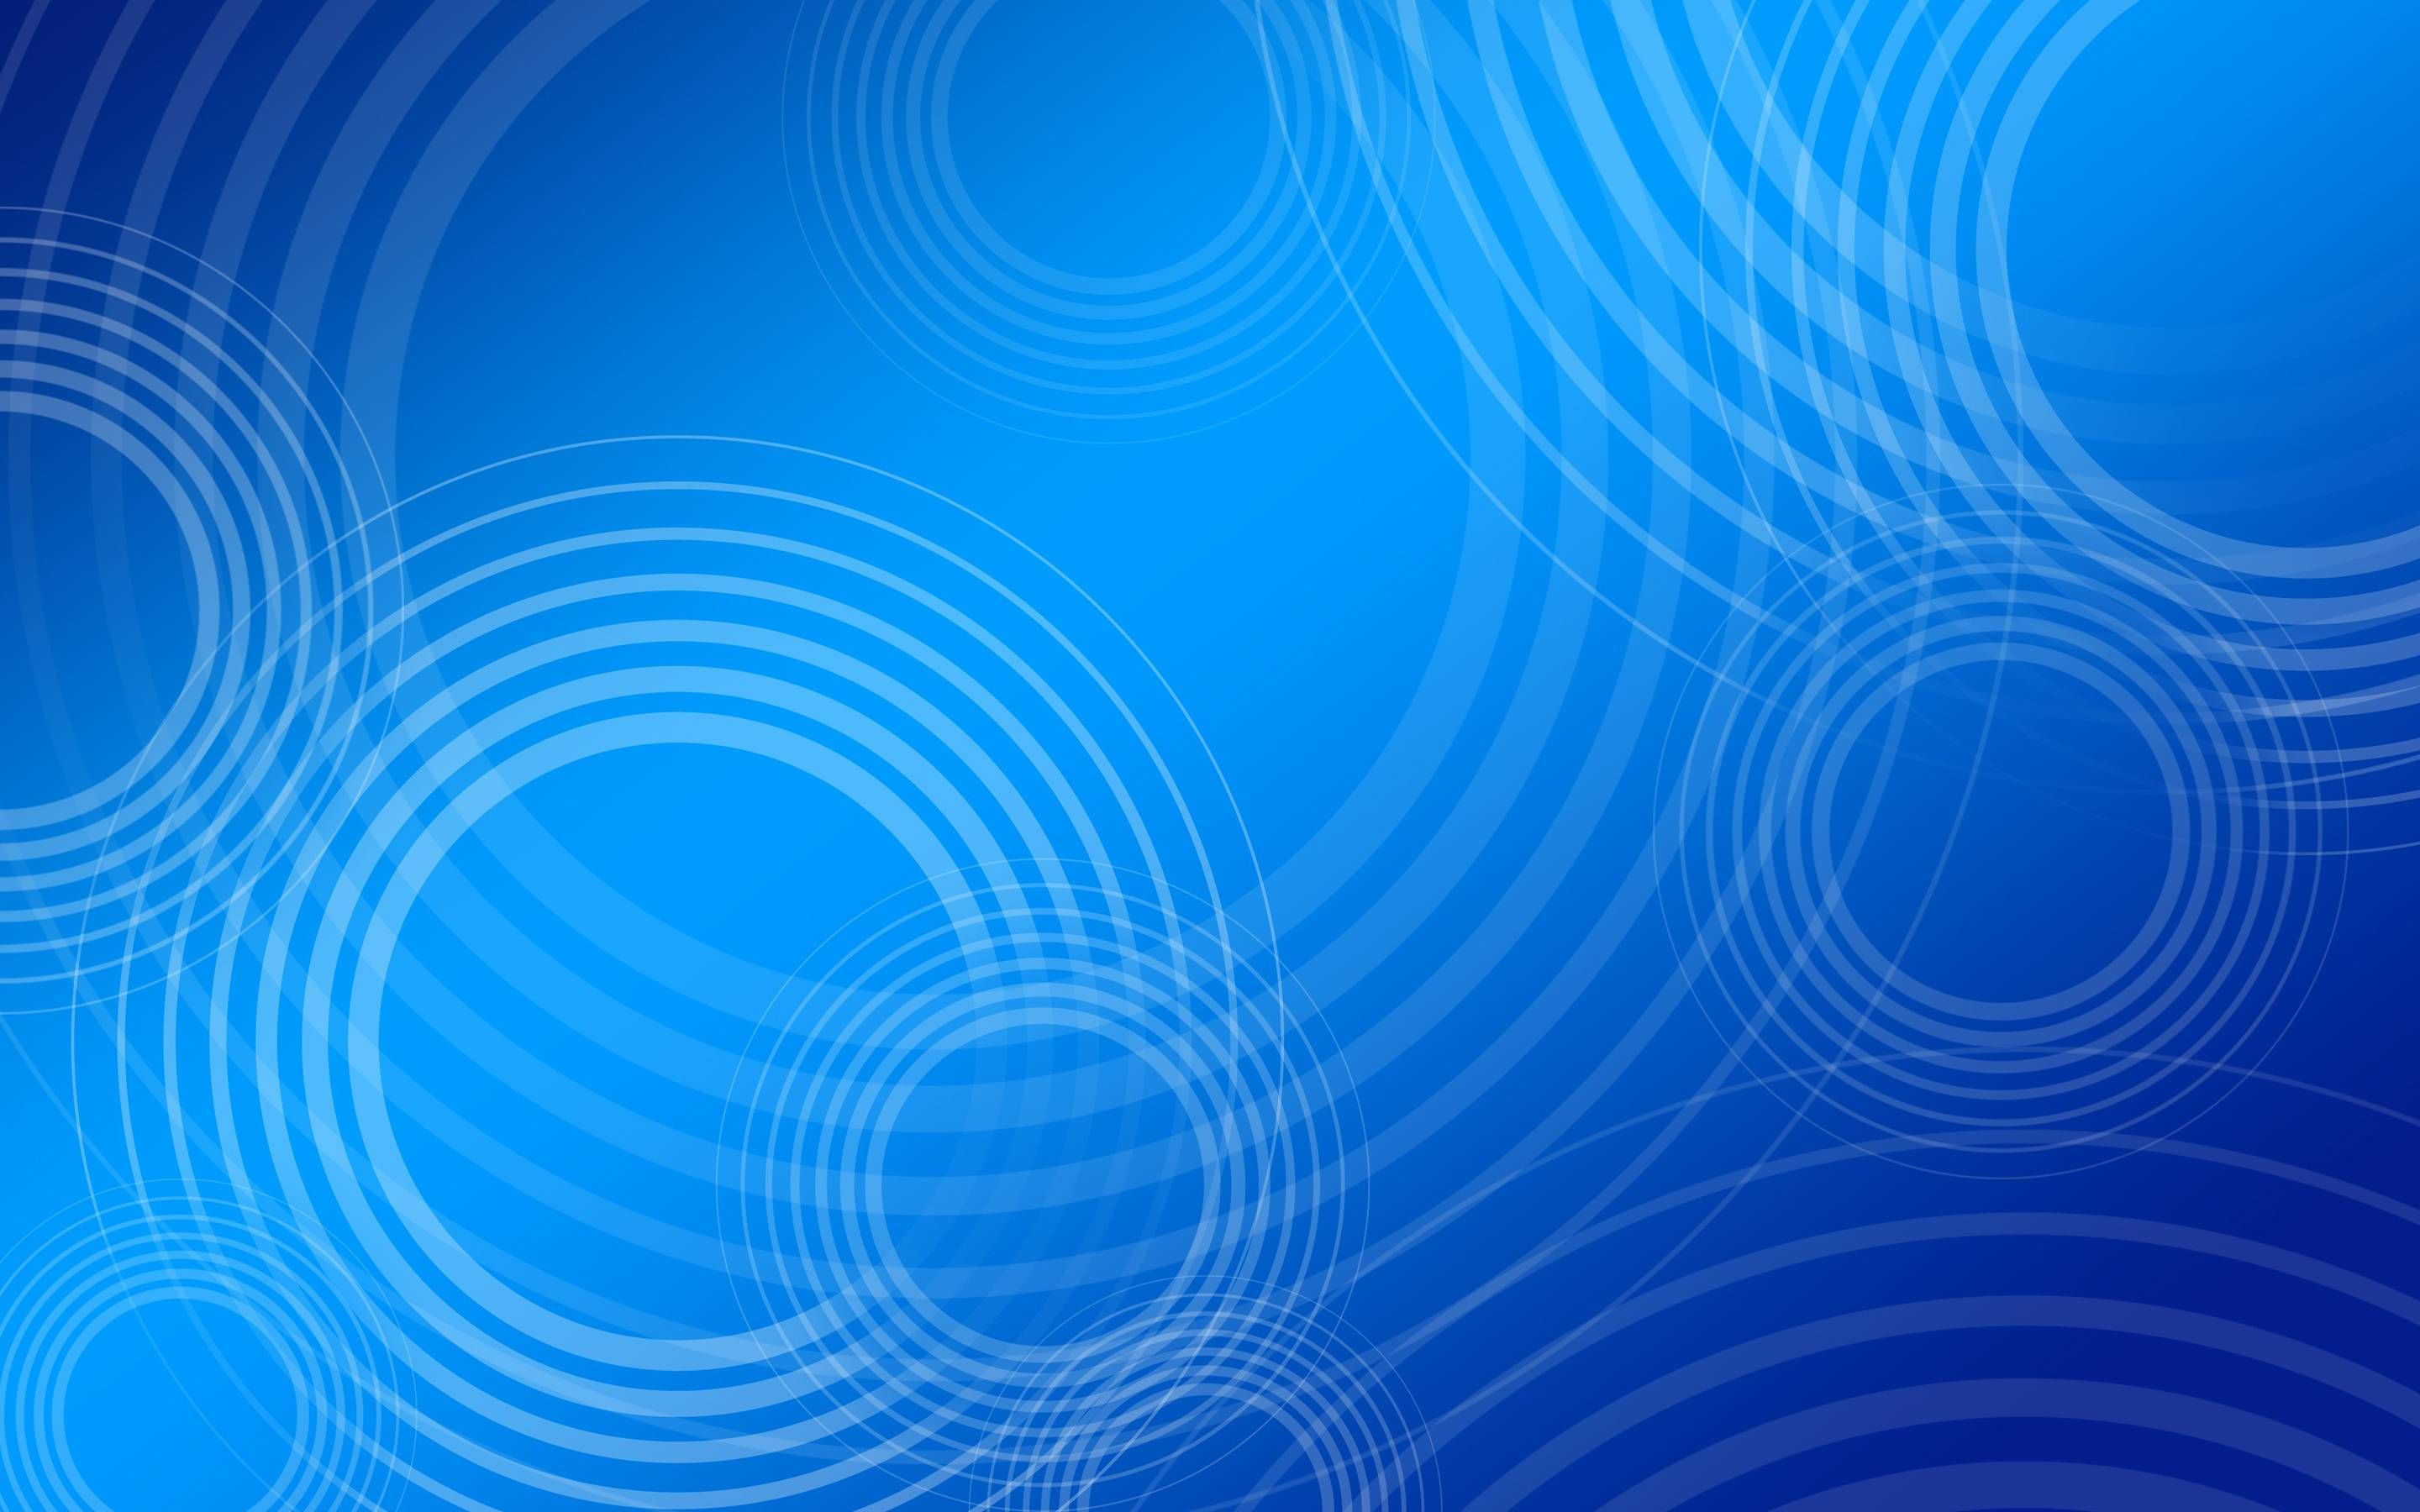 blue and green graphic wallpaper - photo #26